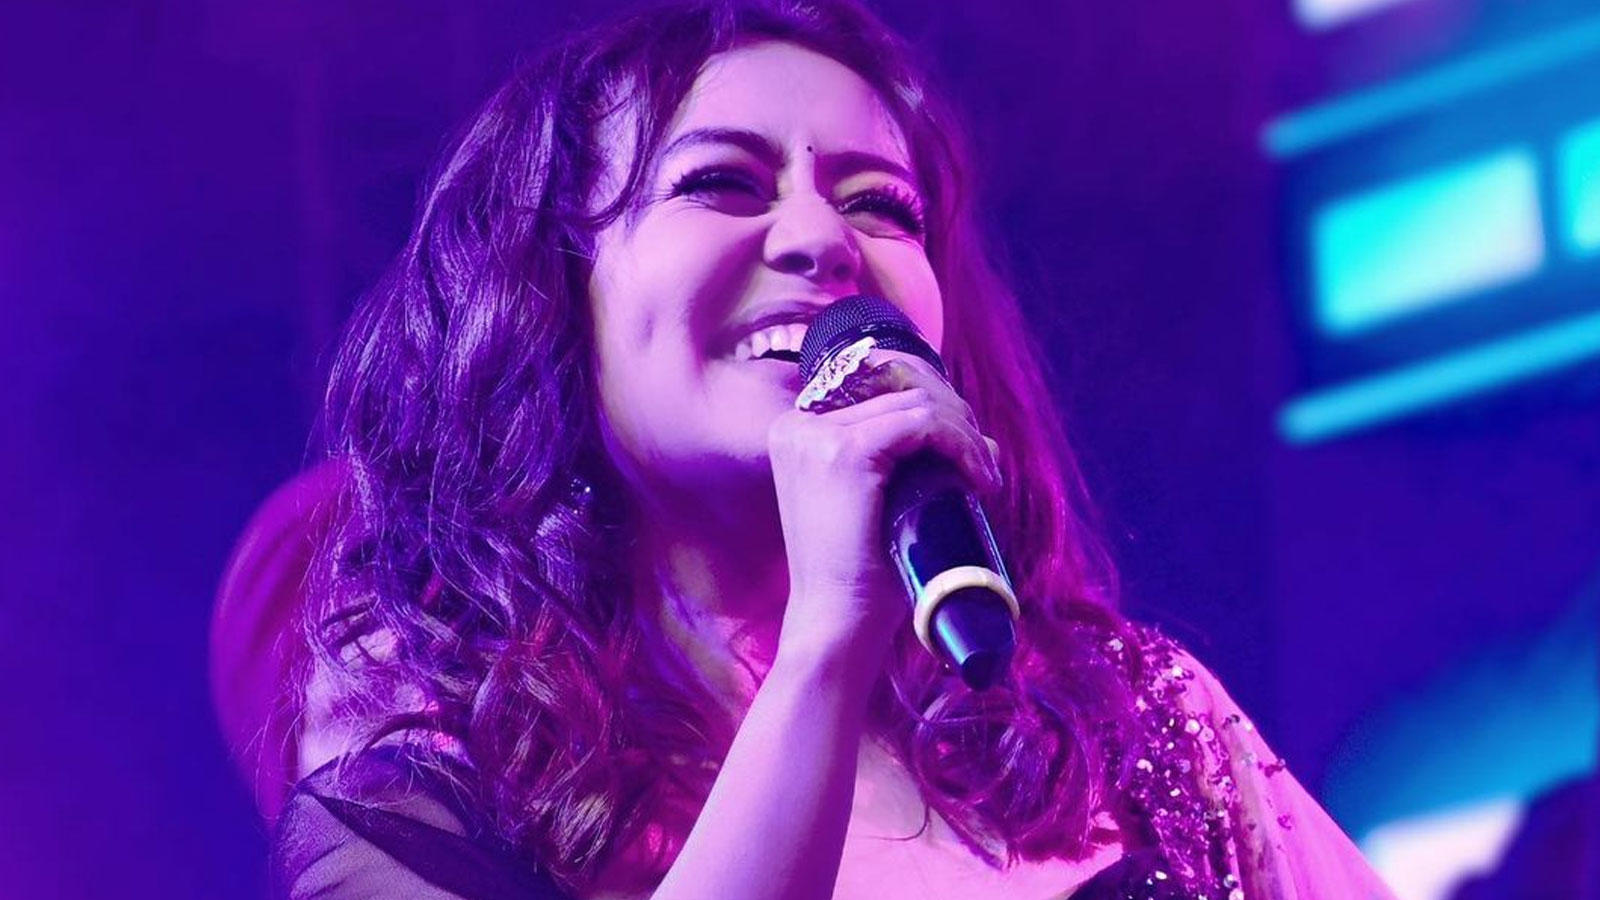 heres-why-neha-kakkar-has-decided-to-only-follow-the-people-she-works-with-on-instagram